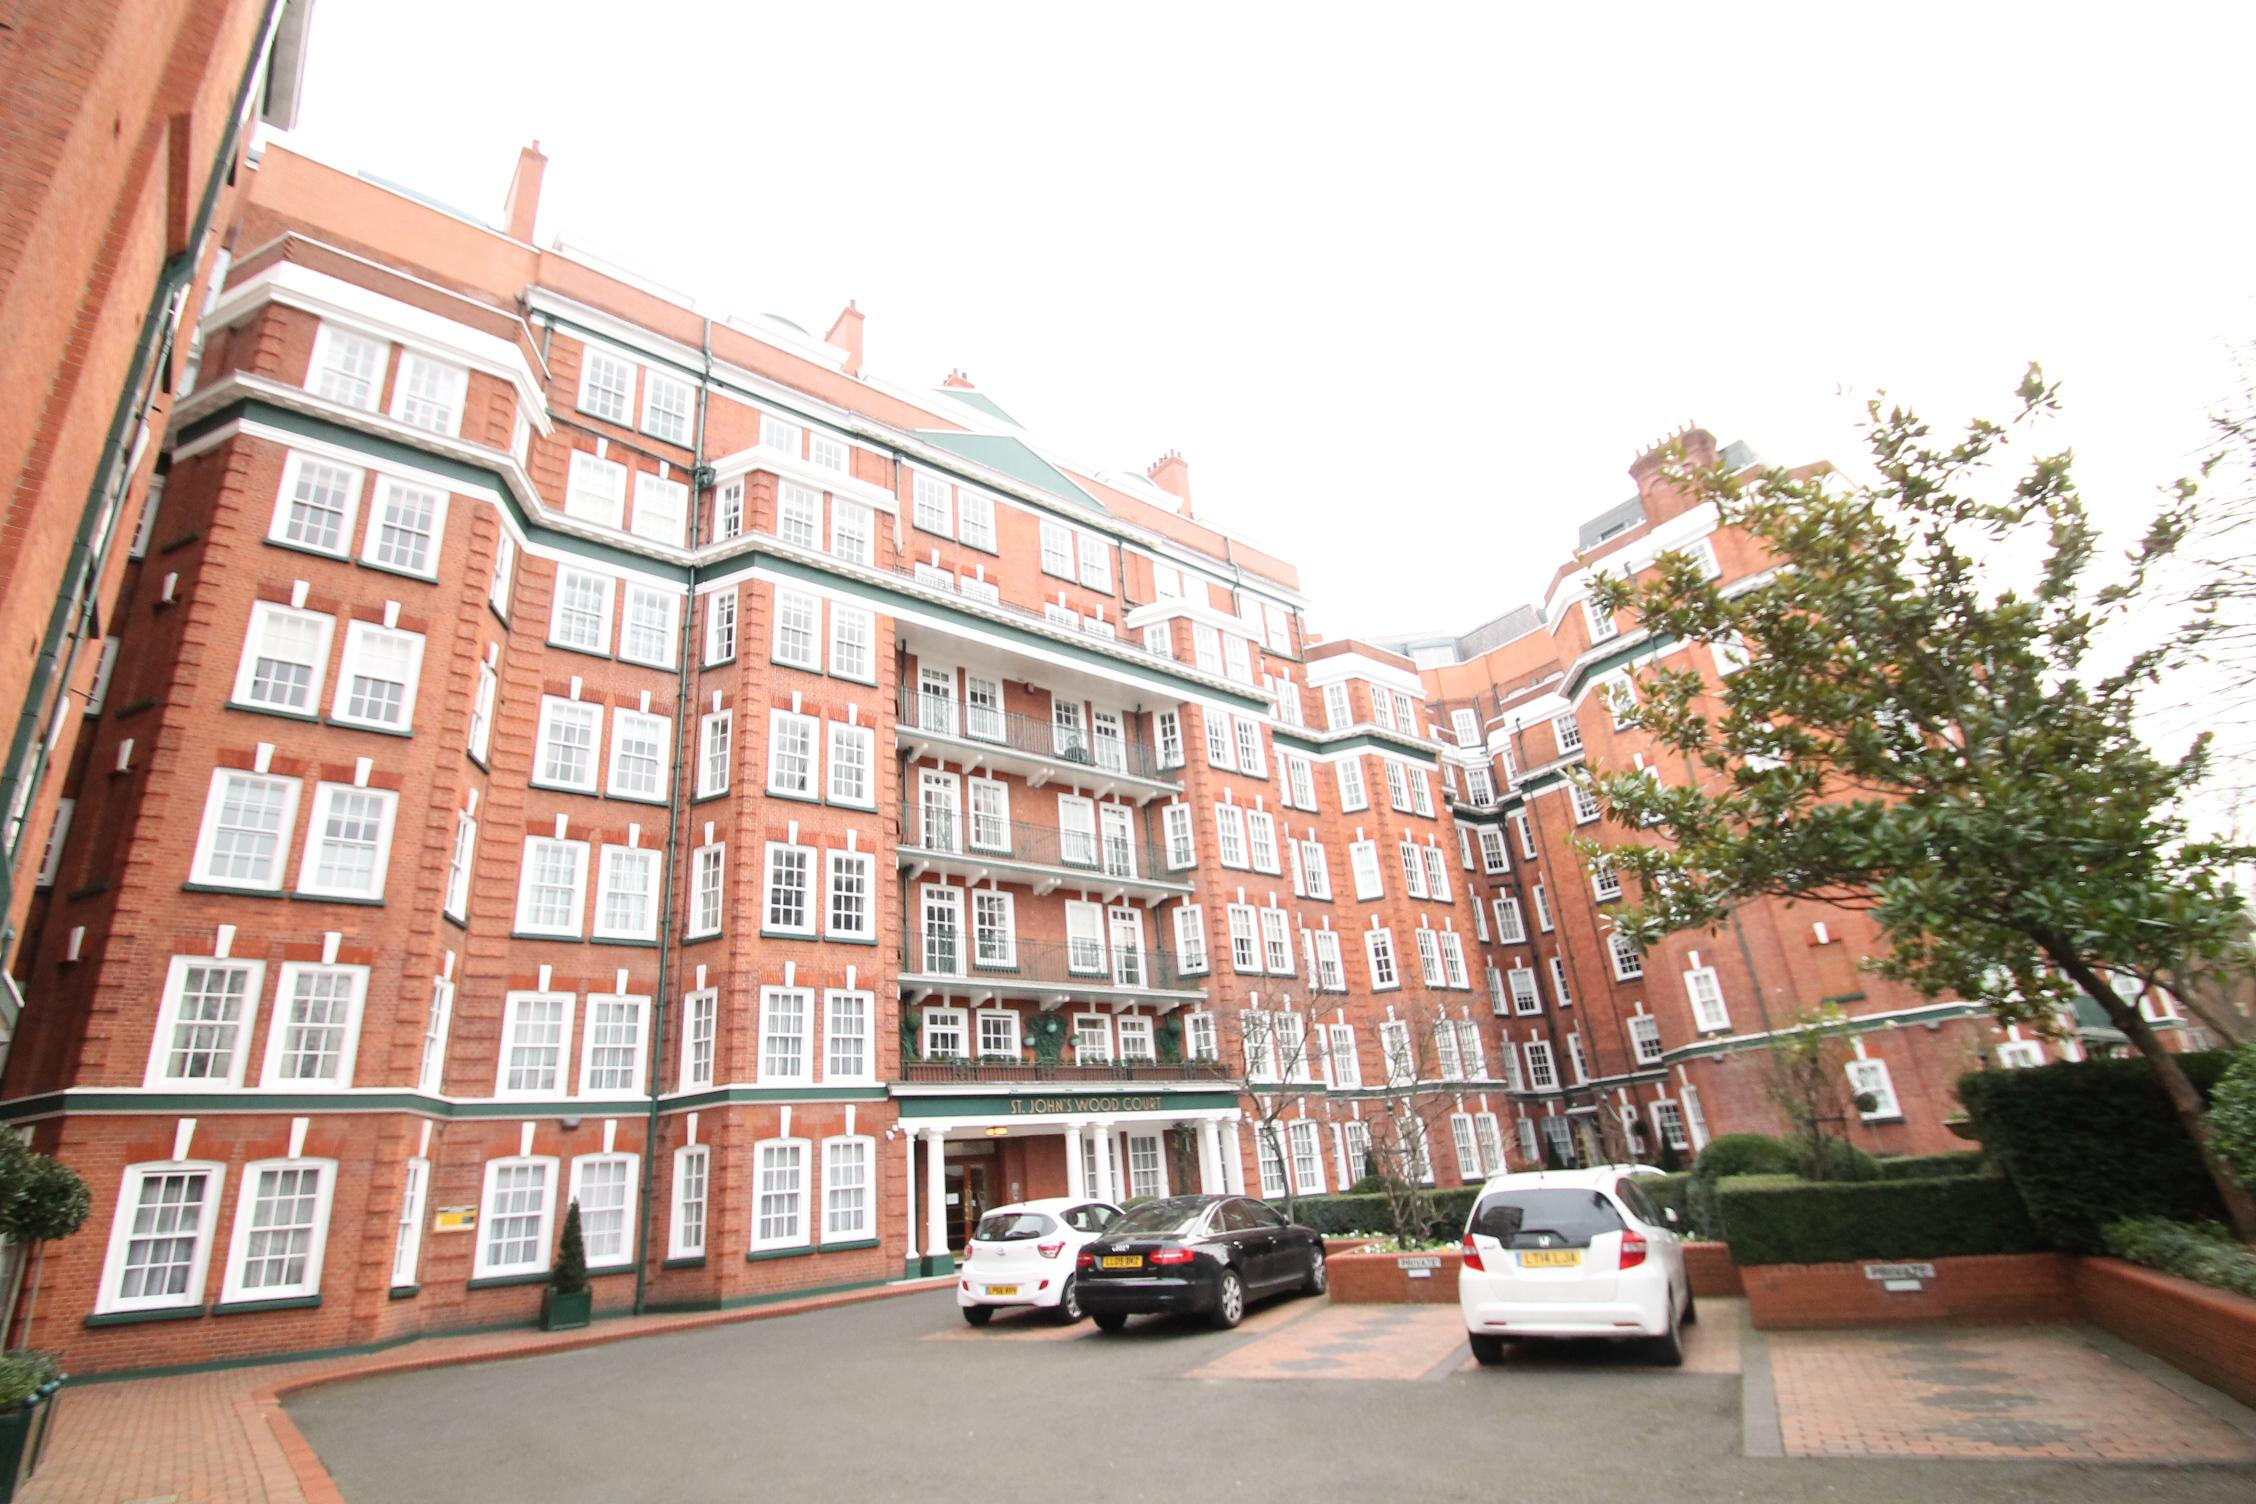 St. Johns Wood Court, St. Johns Wood Road, London NW8